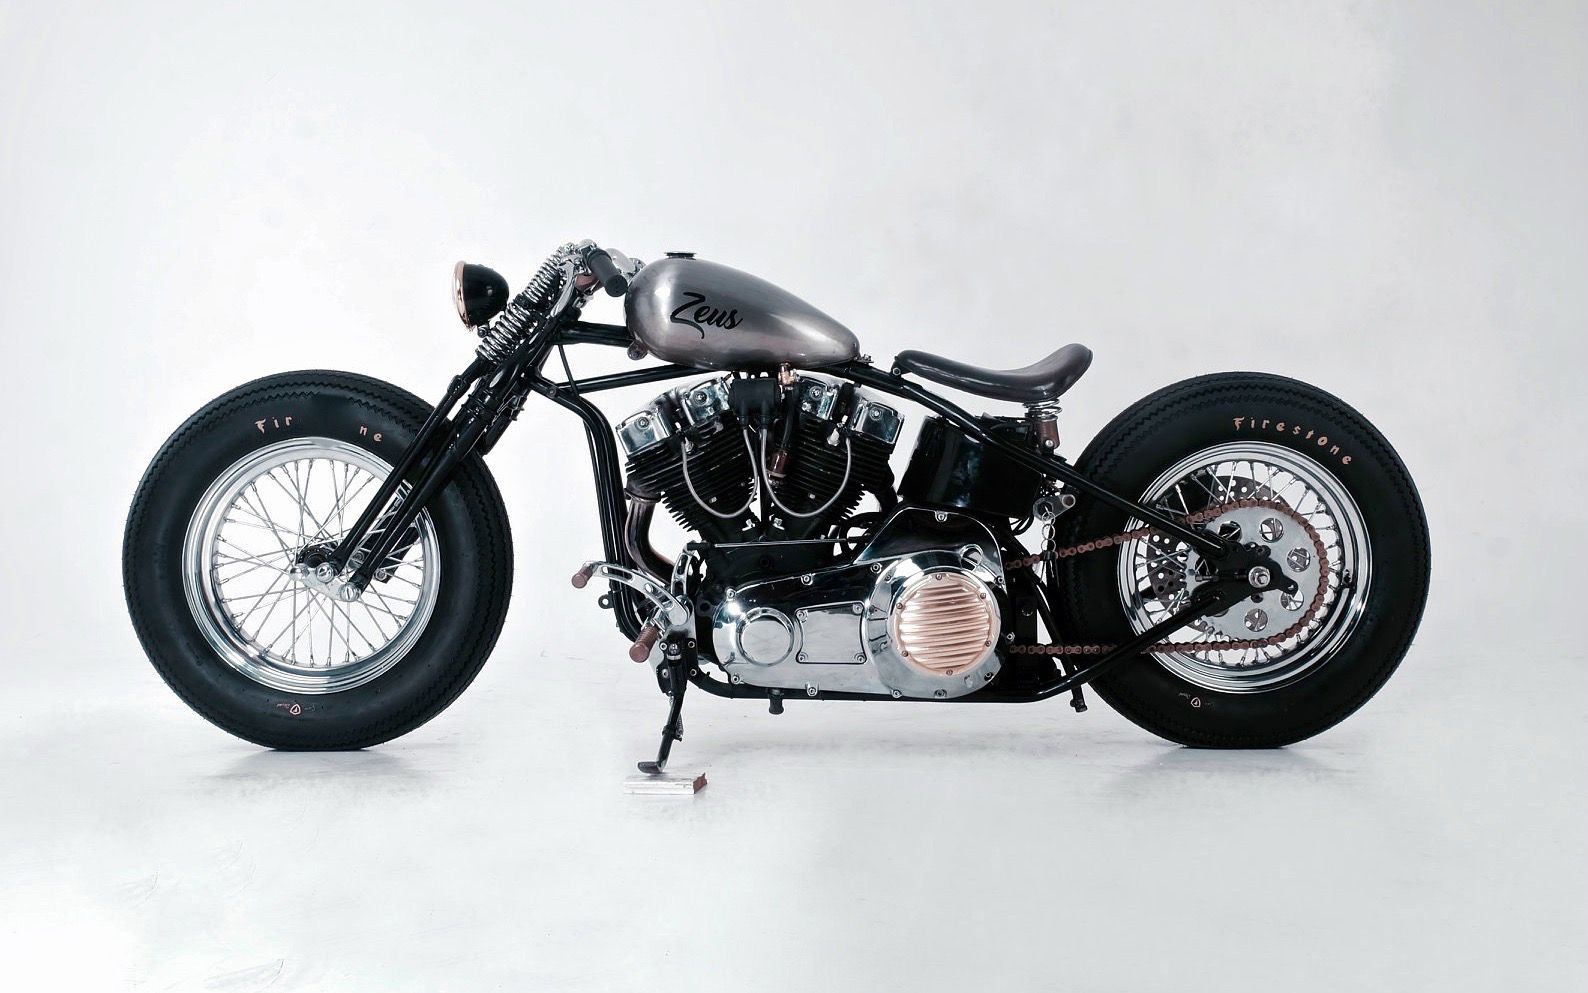 The Realistic Project Model  1983 Harley Davidson